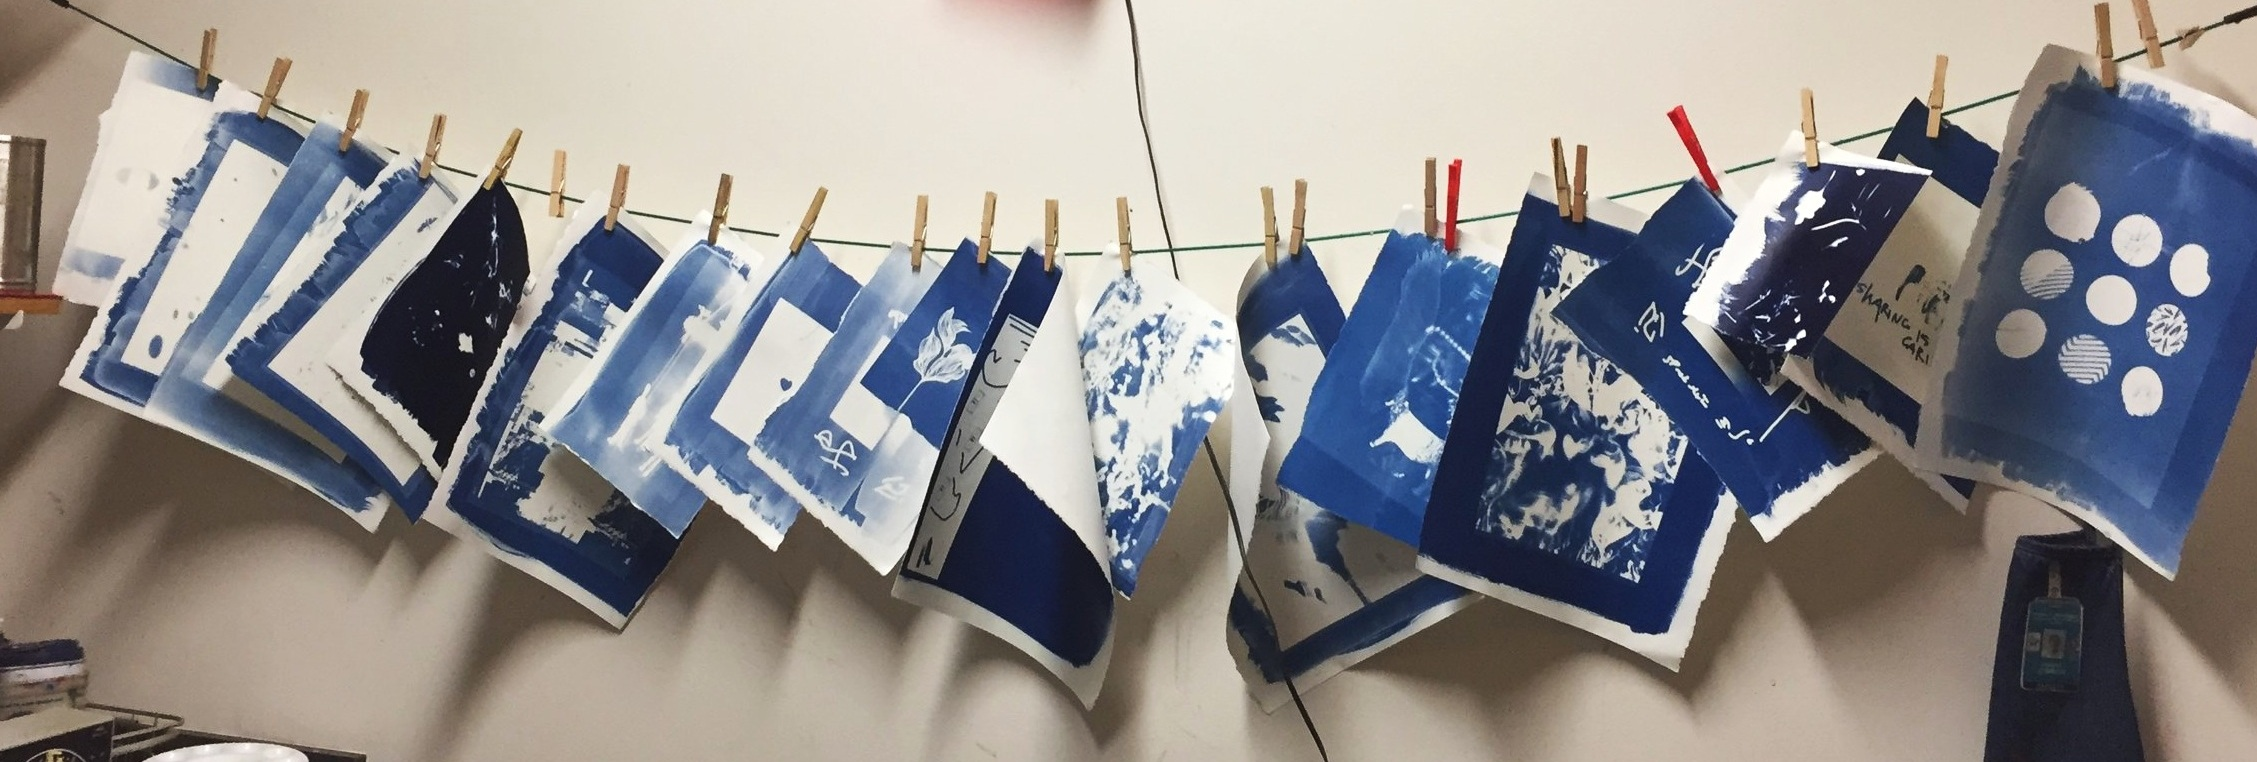 cyanotype+artist+image+workshop+texas+via+hollydgray.jpg